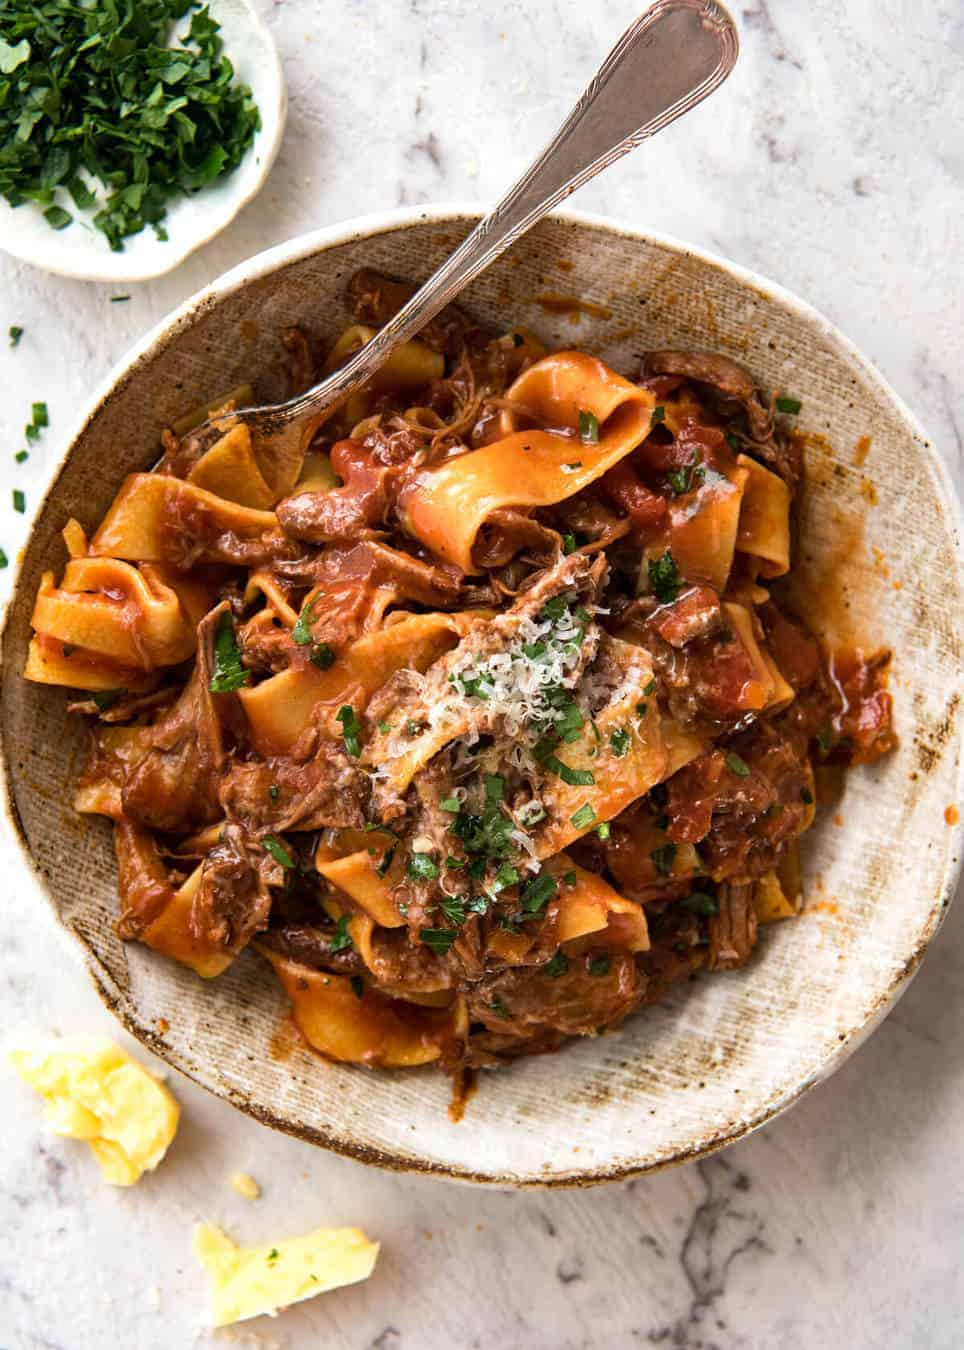 Photo of a bowl of Slow Cooked Shredded Beef Ragu Sauce with Pappardelle from Tin Eats.